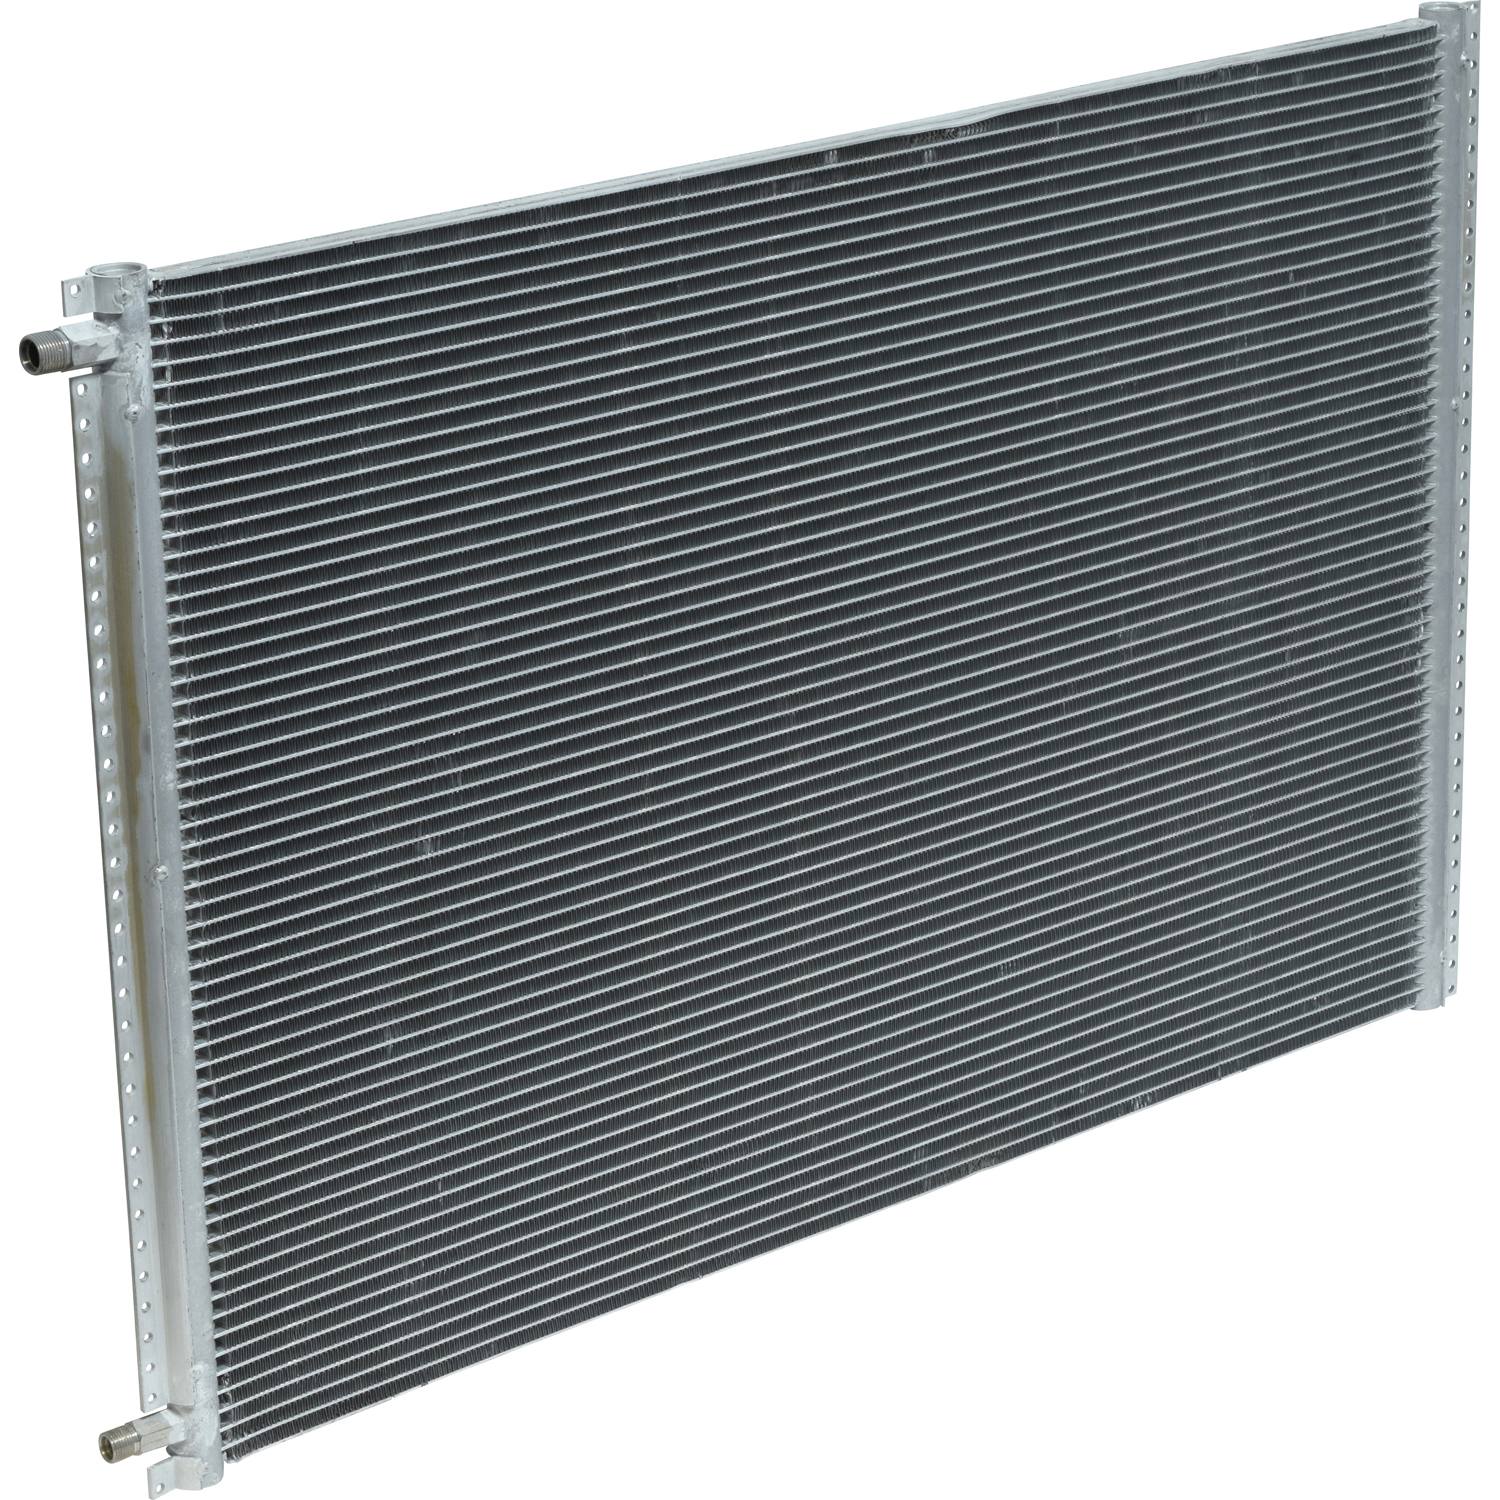 Condenser Parallel Flow CONDENSER MULTIFLOW 23.62in/600mm x 37.4in/950mm x 20mm